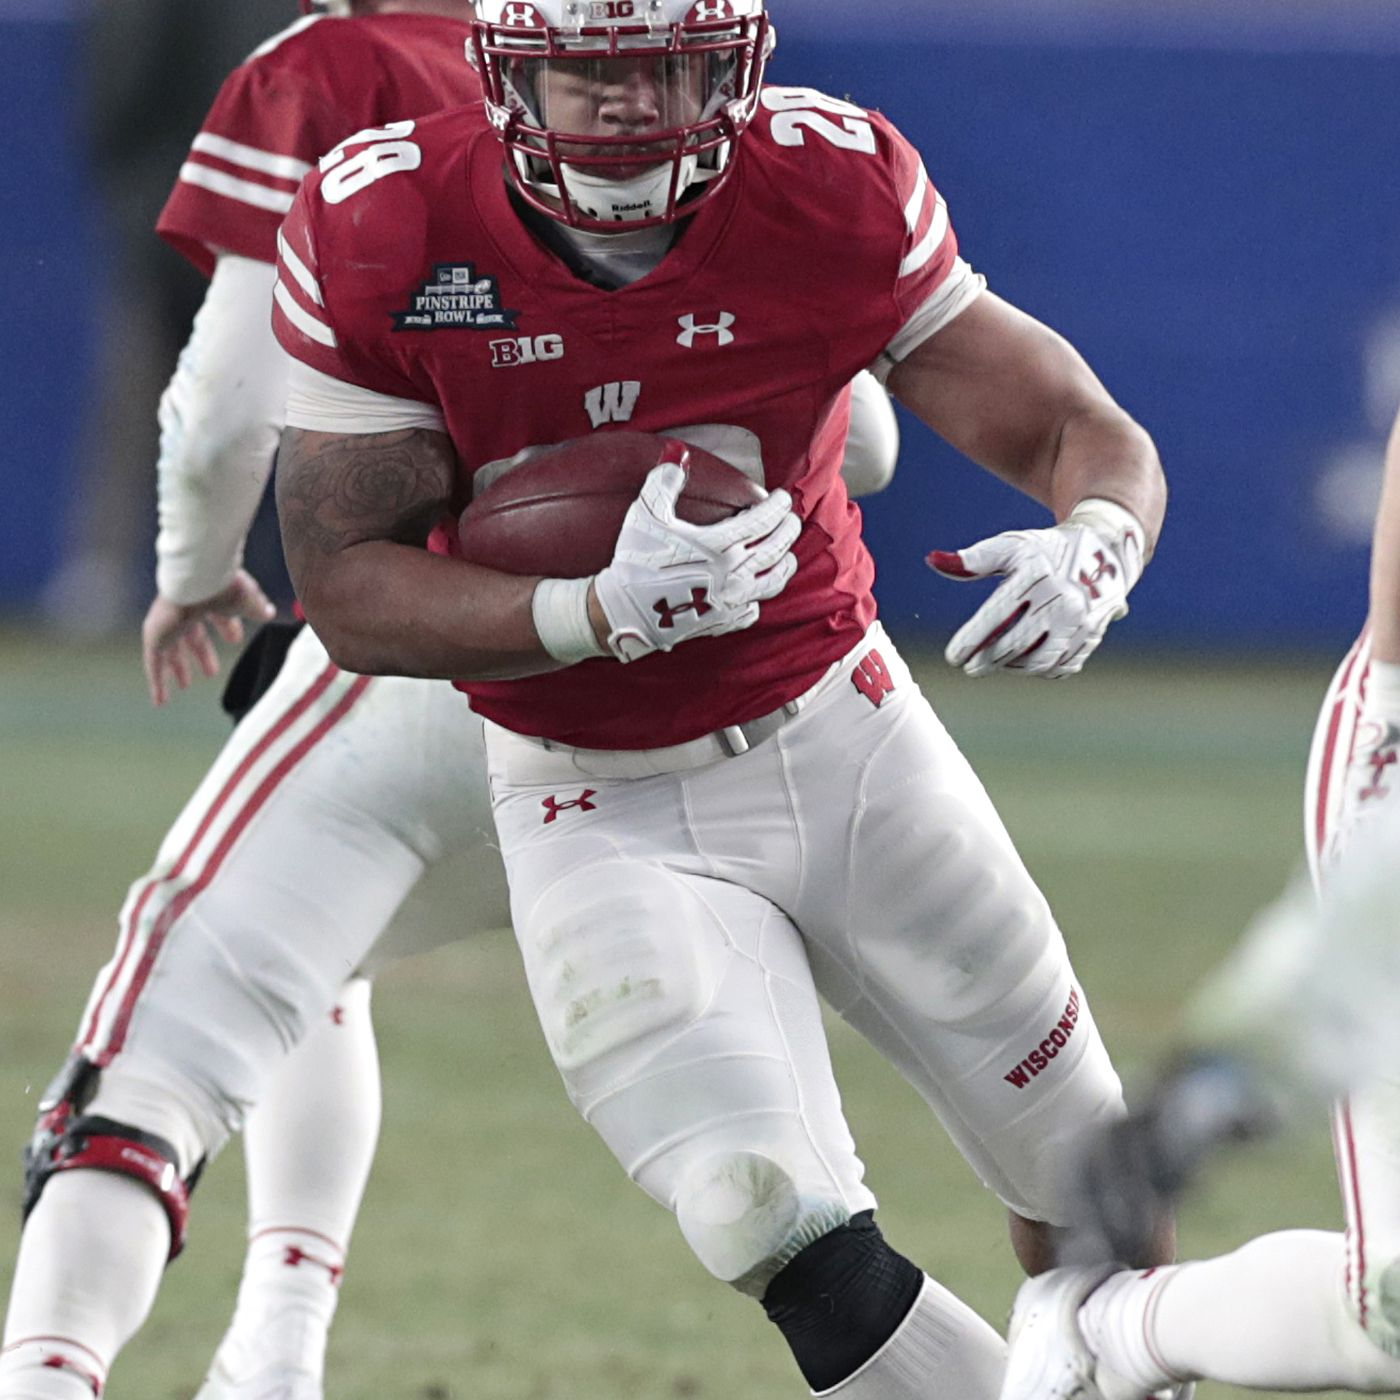 official photos 6ac21 f8b35 Wisconsin football: Badger connections for the NFLPA ...